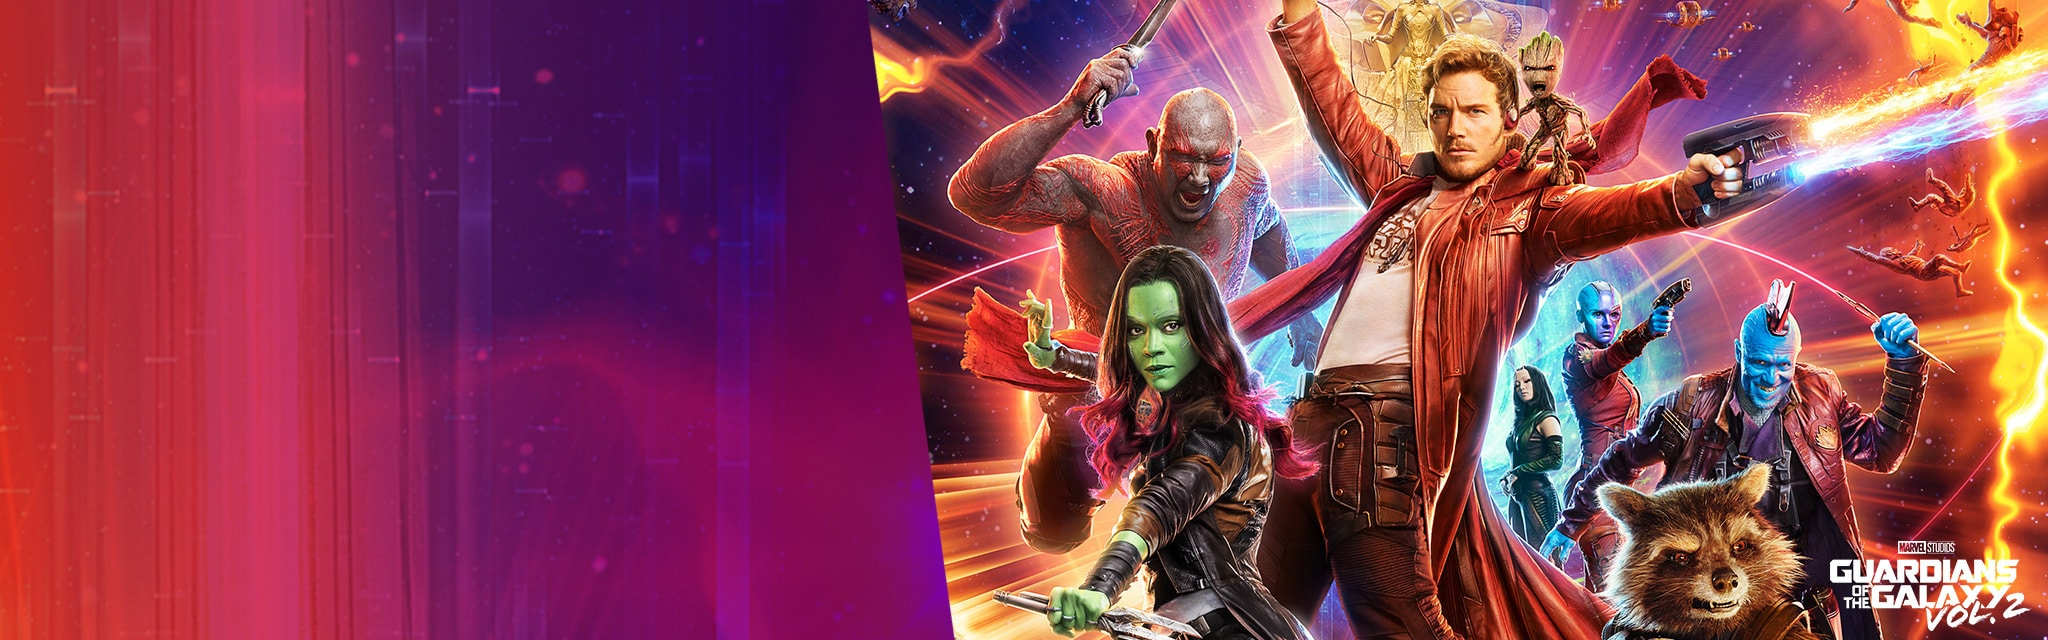 "Guardians of the Galaxy ""In Cinemas"" Hero - SG, MY"